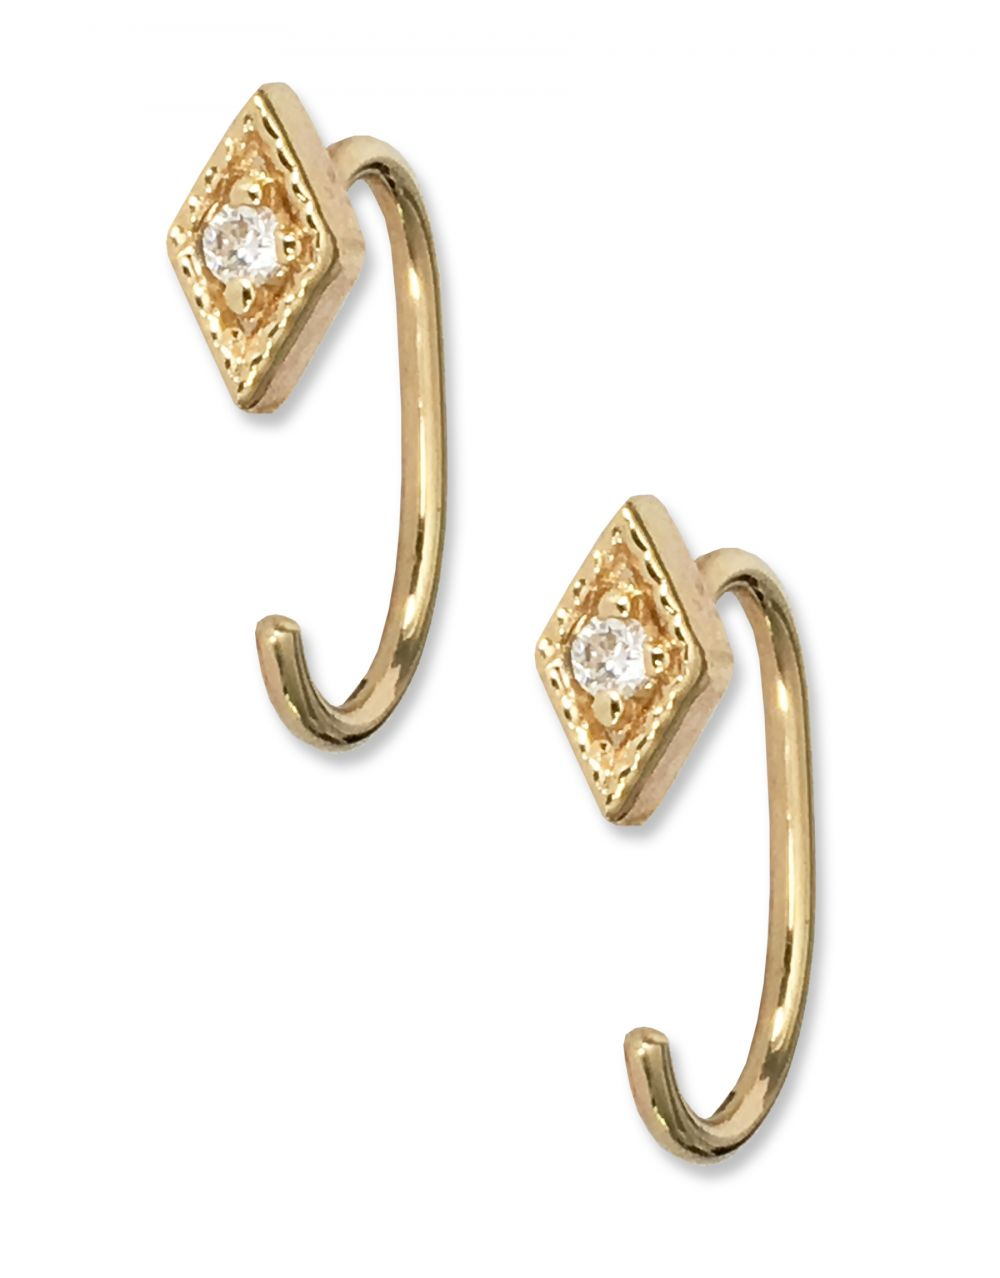 Gondal Open Hoops<br /><i><small>14K Yellow Gold with White Diamonds</small></i><br />